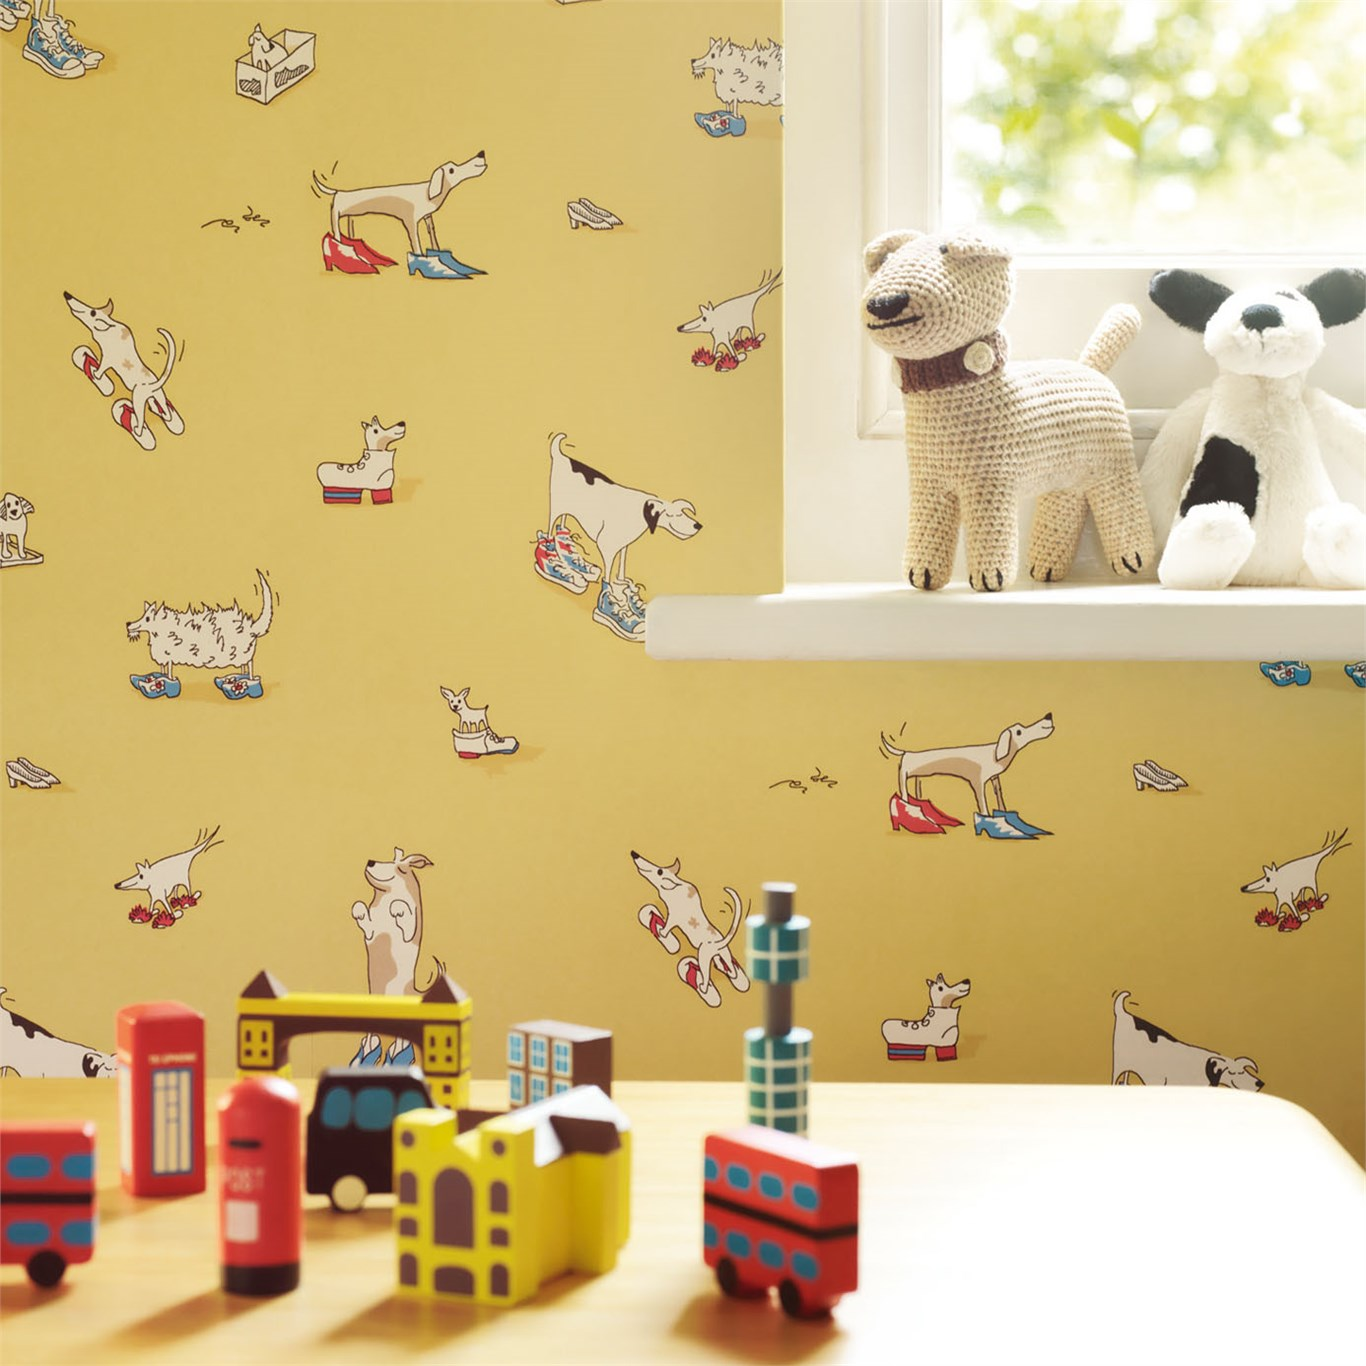 Sanderson abracazoo little sanderson abracazoo wallpaper dogs in clogs 214012 gumiabroncs Choice Image